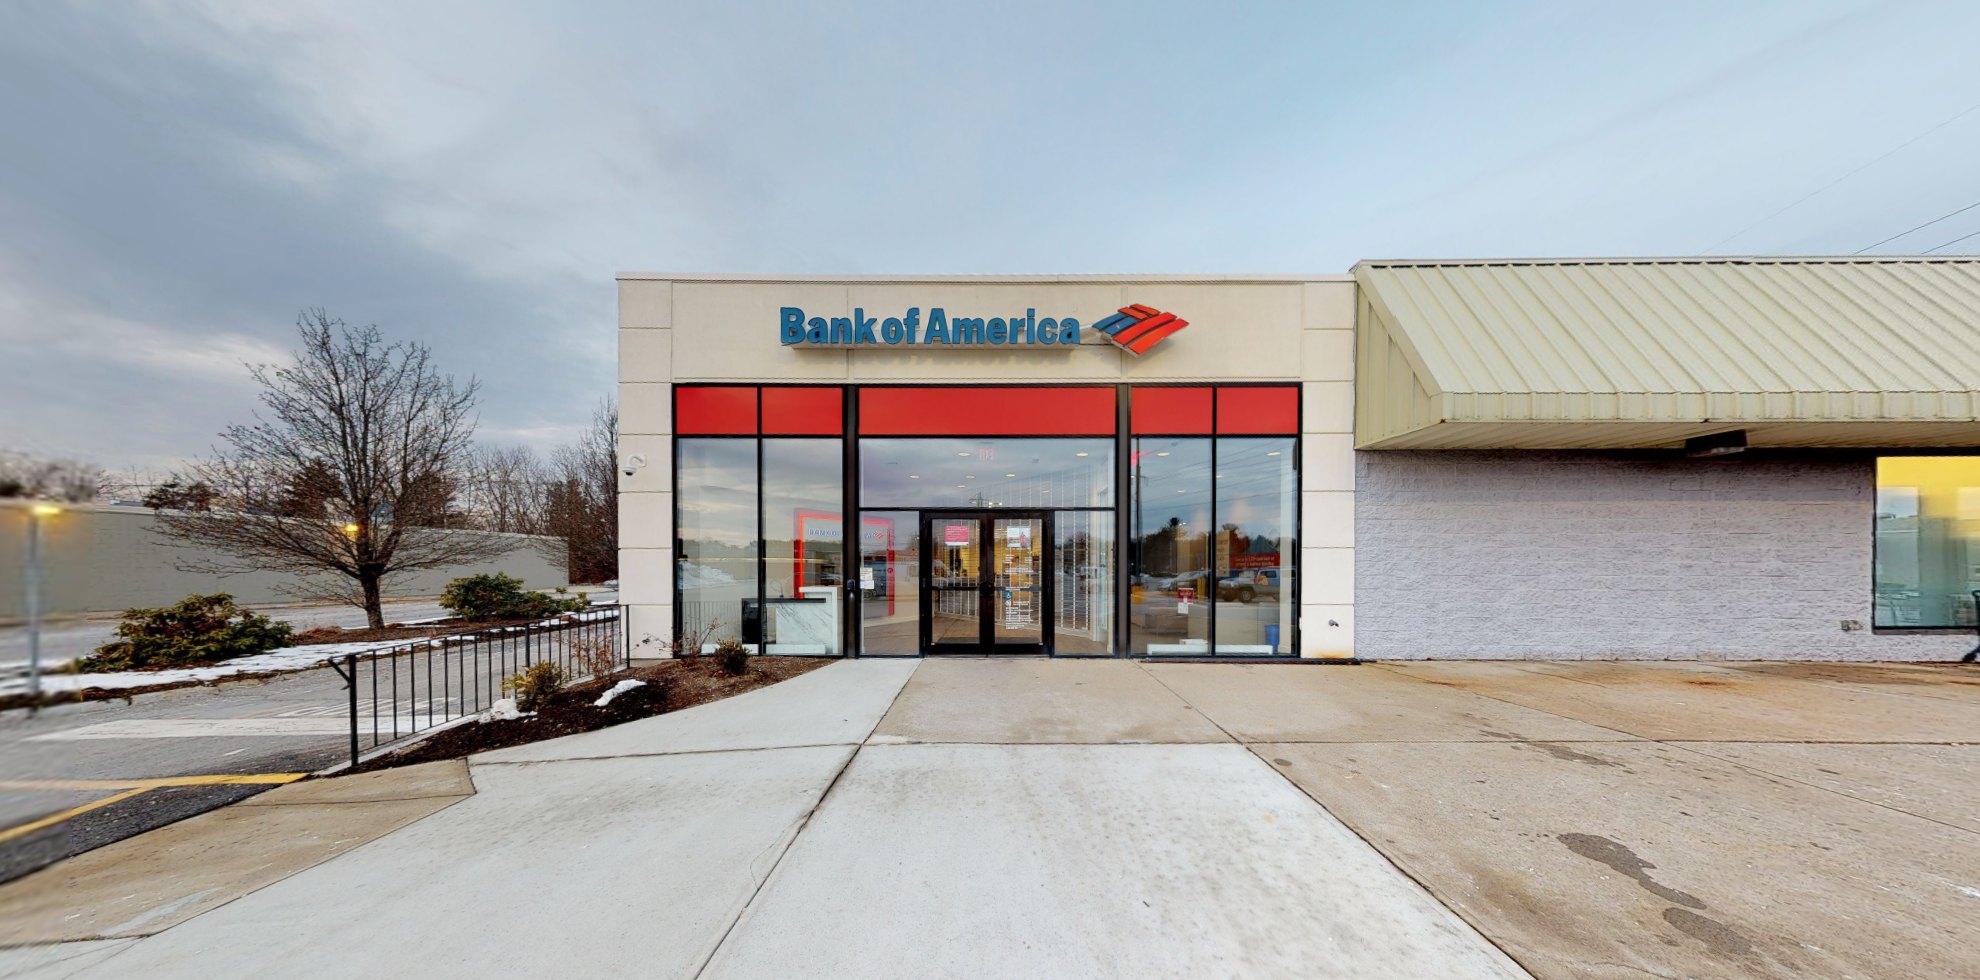 Bank of America financial center with drive-thru ATM | 300 Route 44, Raynham, MA 02767